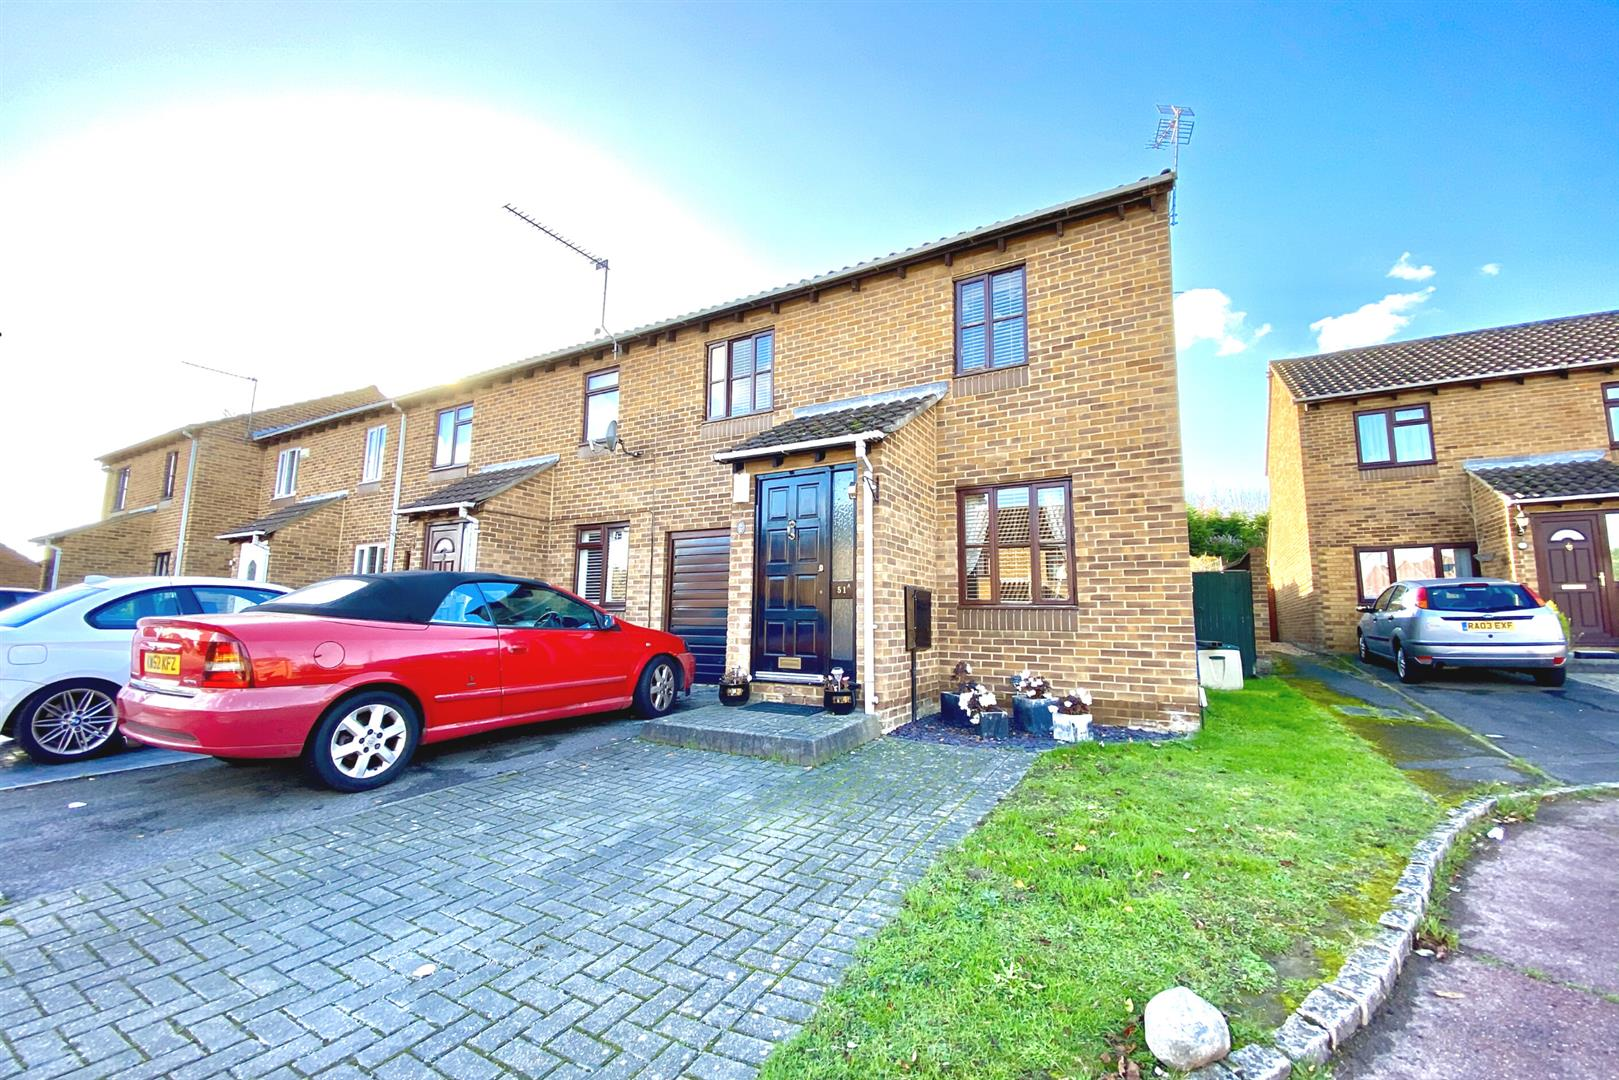 3 bed end of terrace for sale in Lower Earley  - Property Image 1